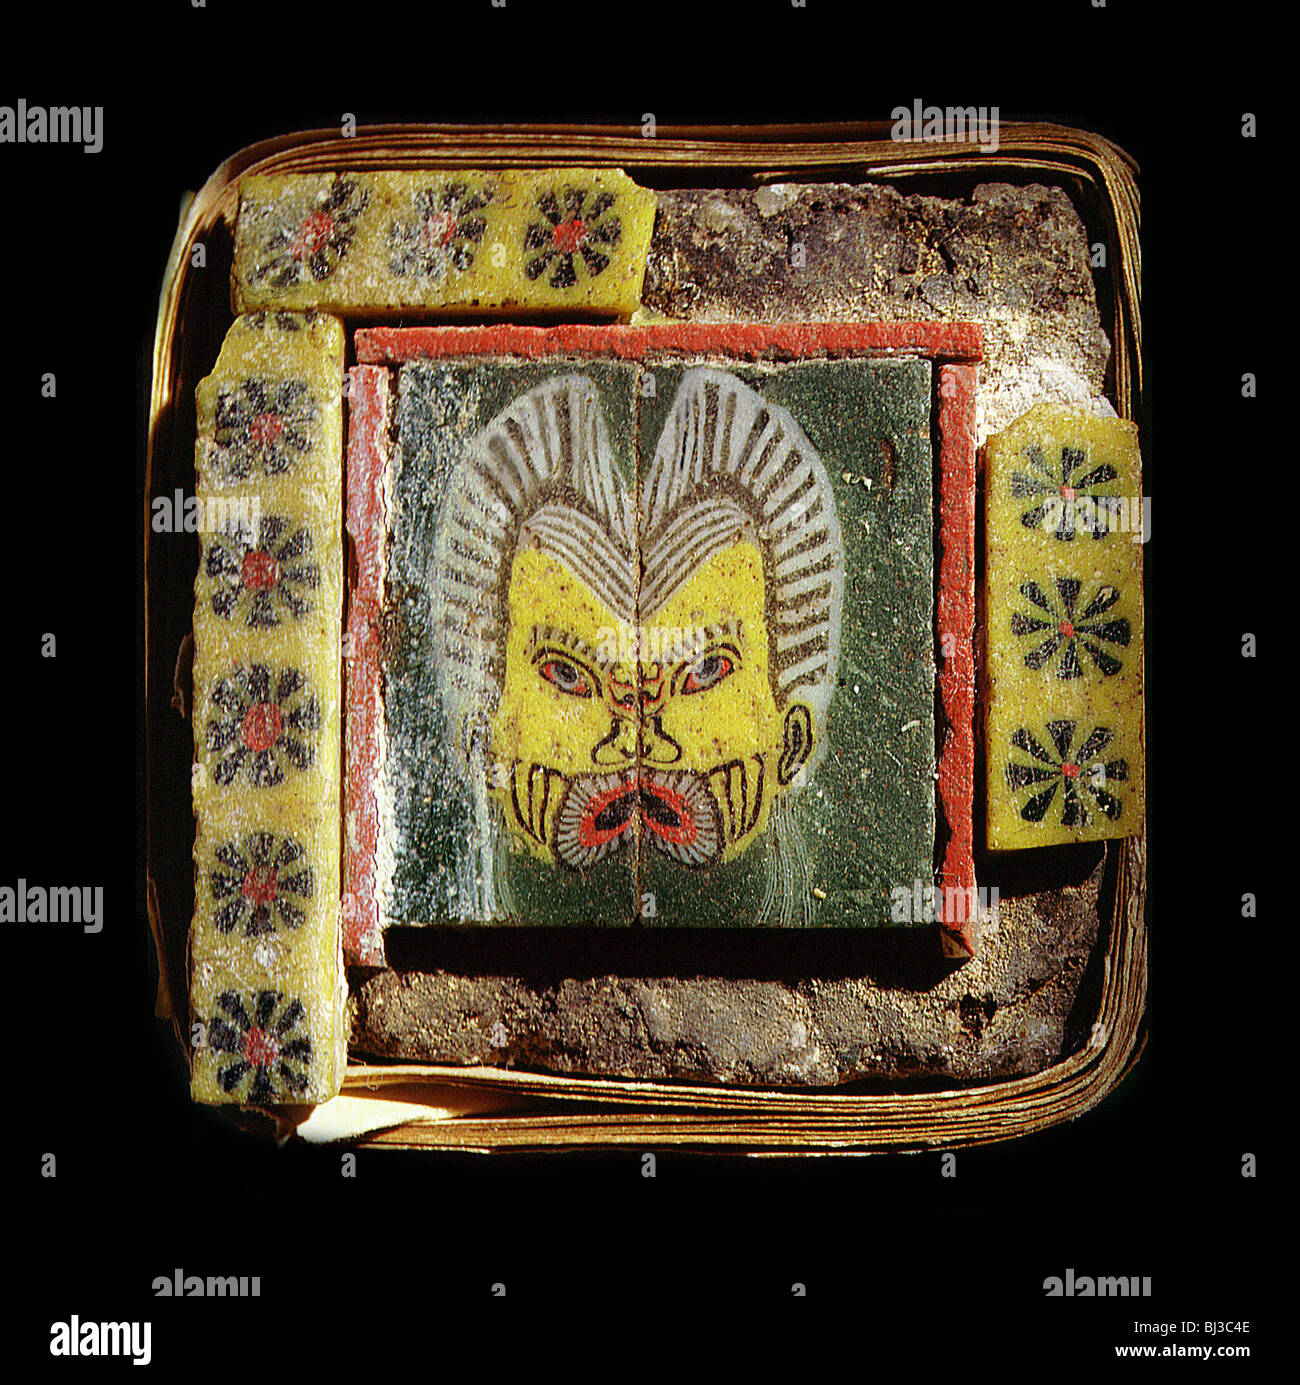 Ancient egyptian furniture - Furniture Inlay Of Glass Tiles Ancient Egyptian Ptolemaic Period C2nd 1st Century Bc Artist Werner Forman